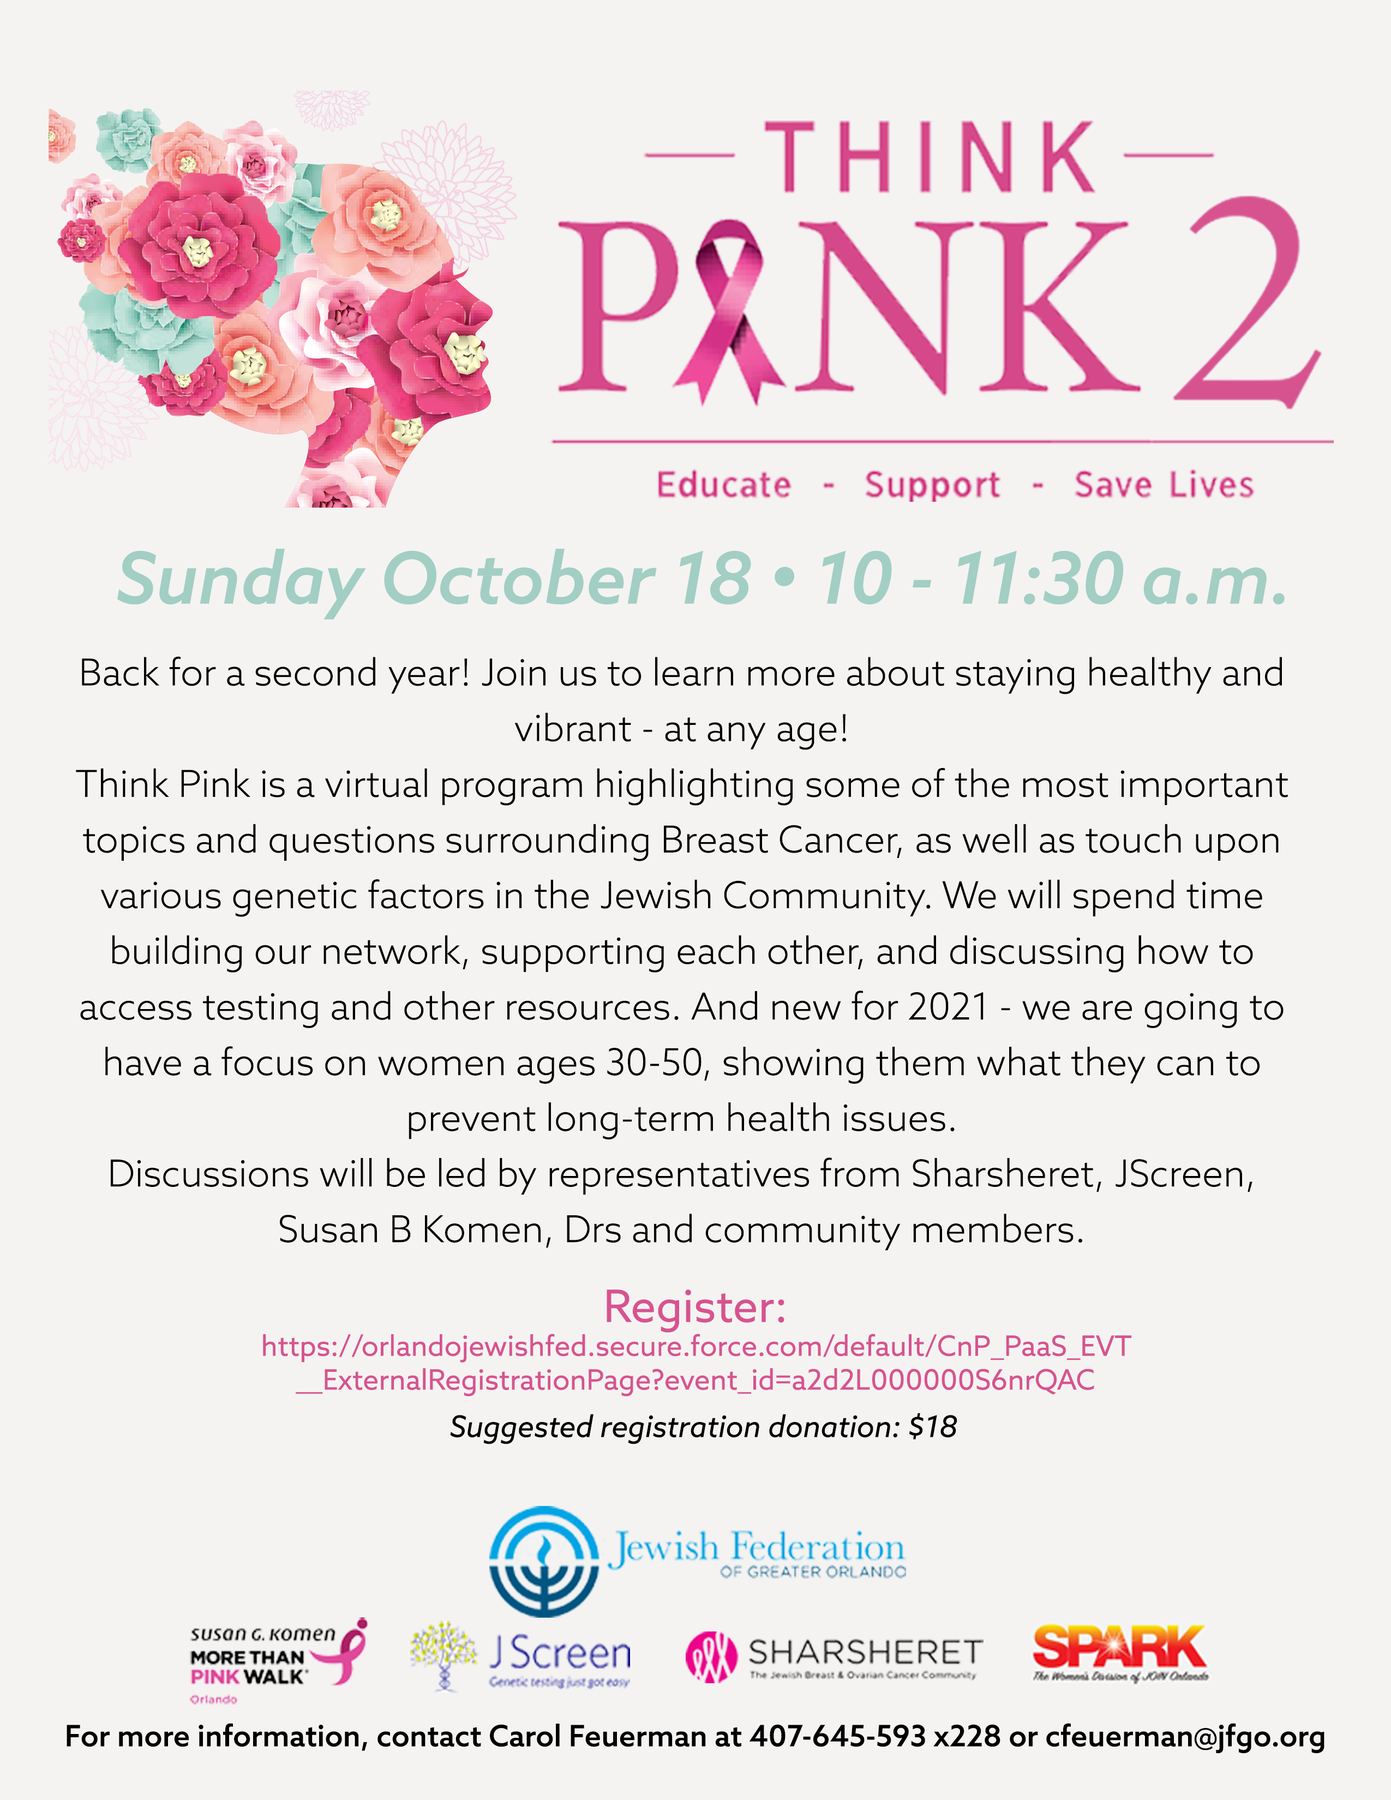 Think Pink 2 Flyer